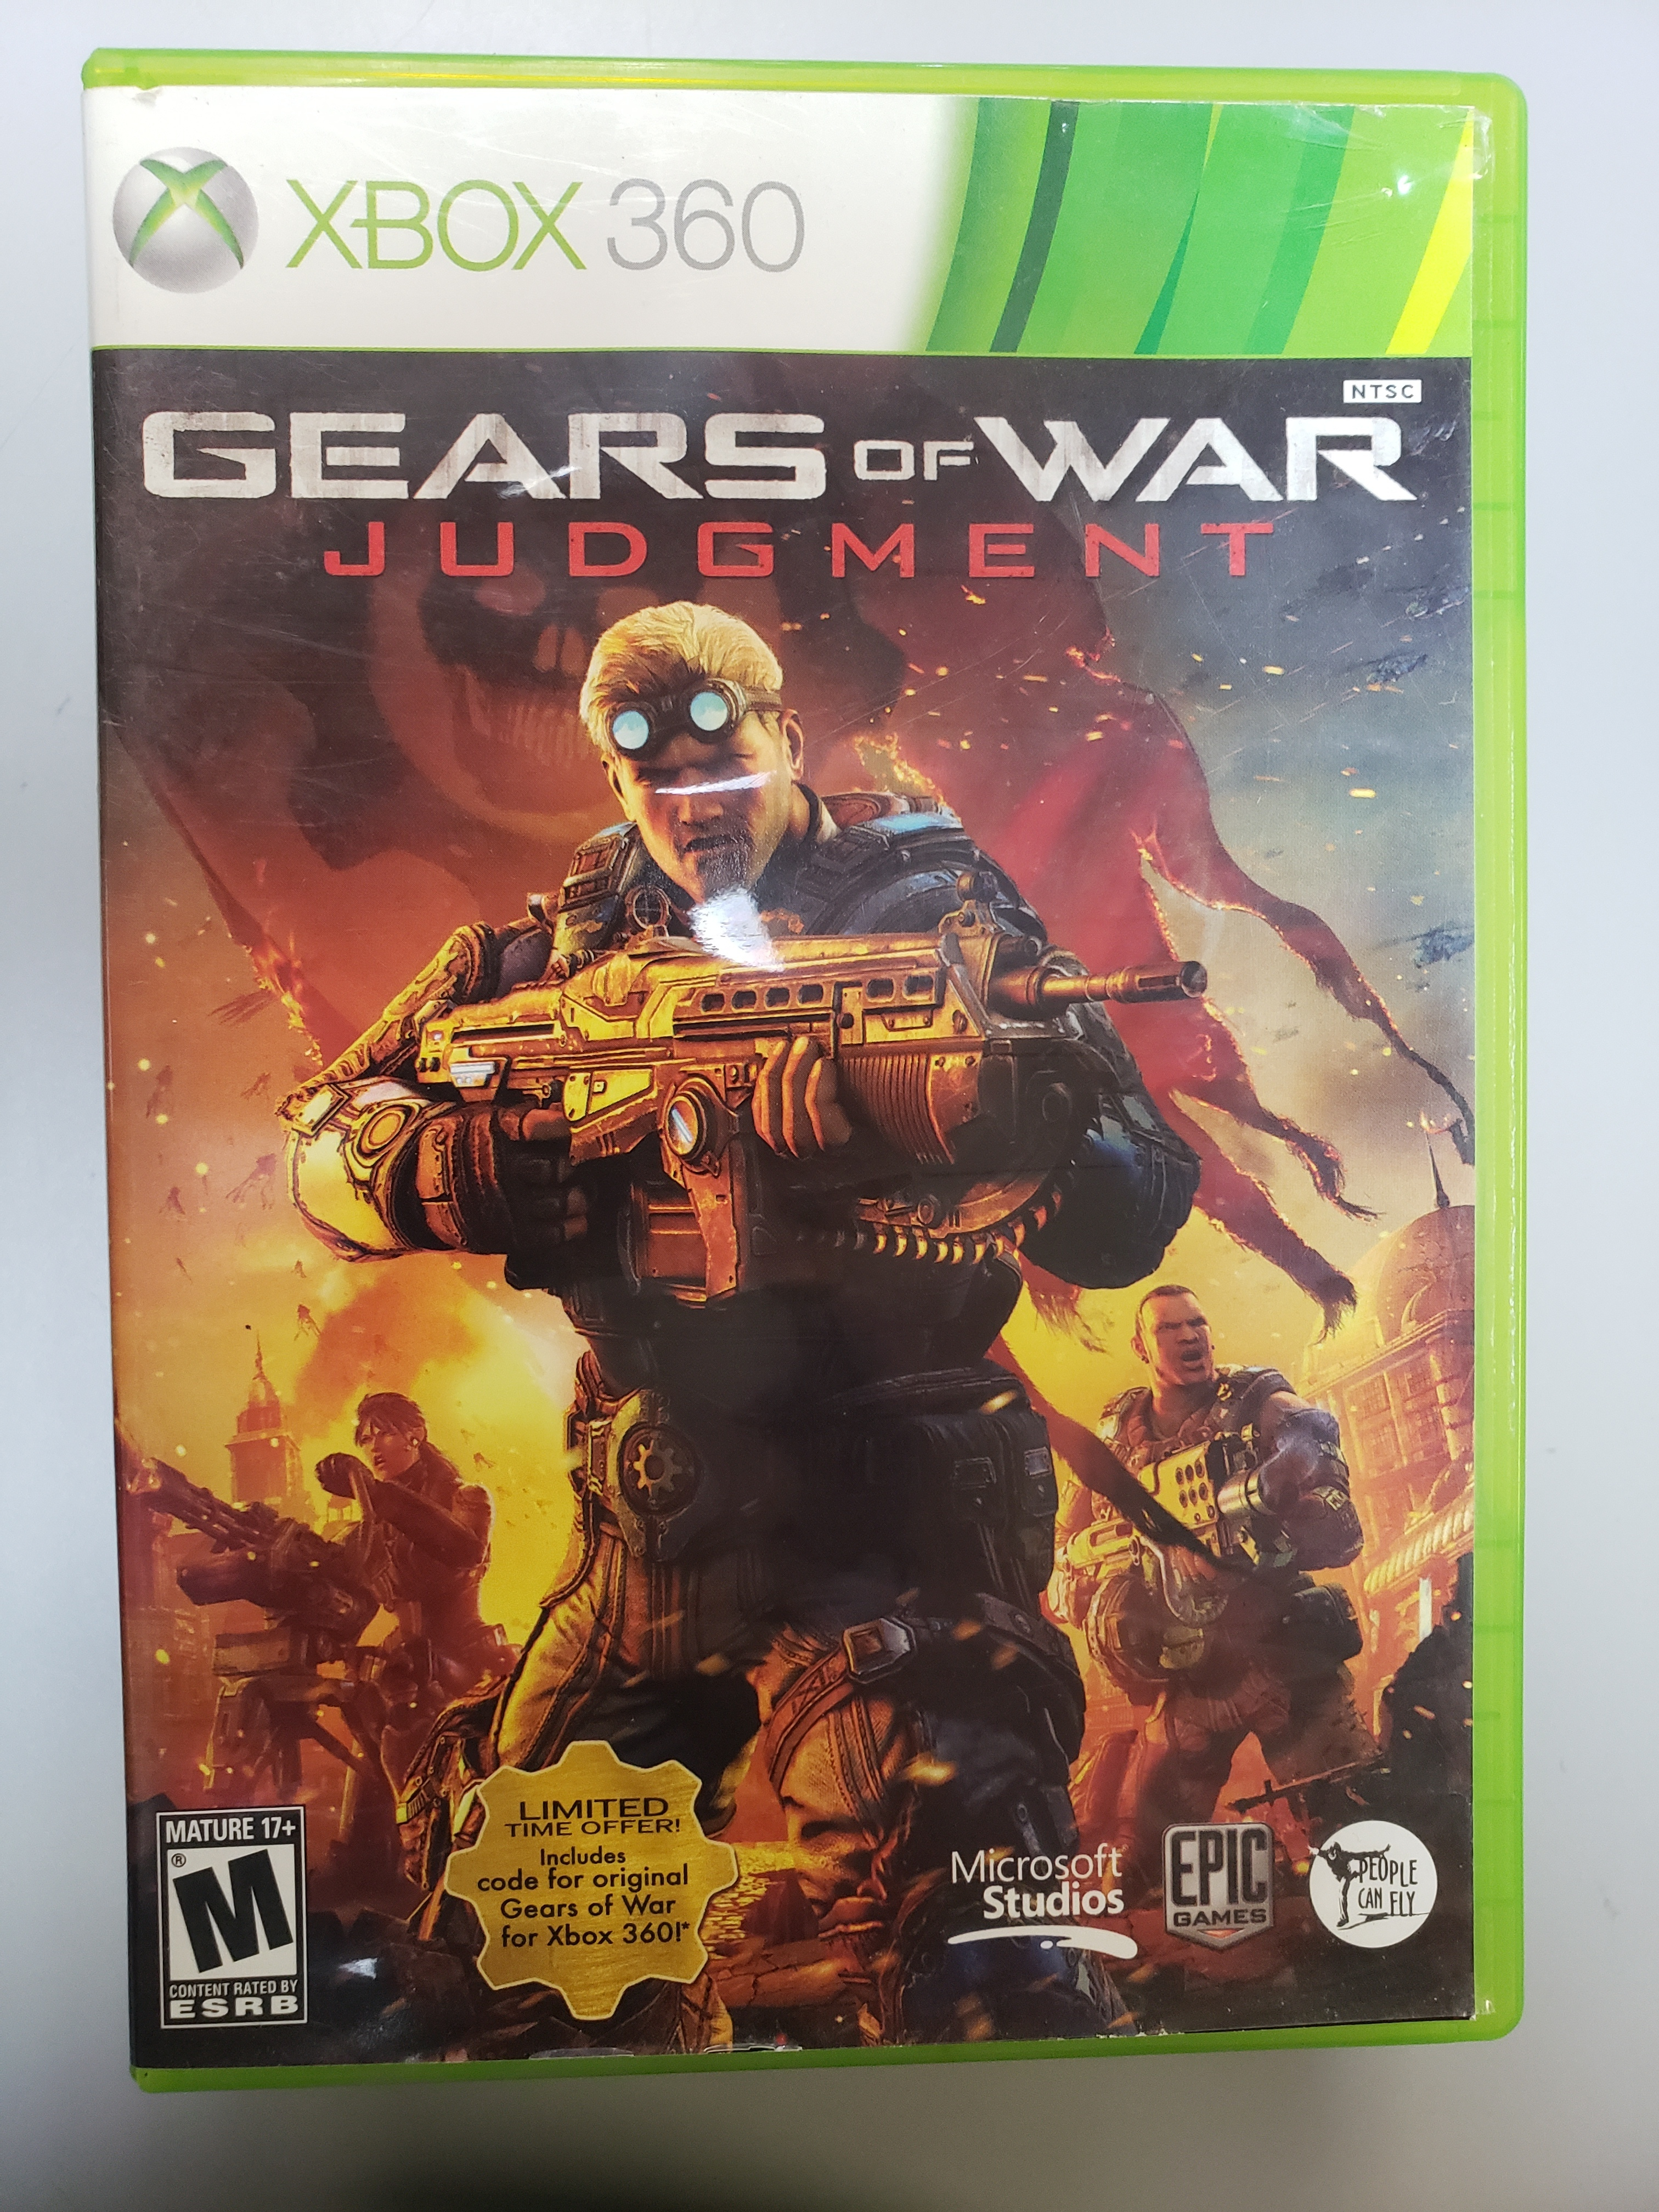 GEARS OF WAR: JUDGEMENT - XBOX 360 GAME